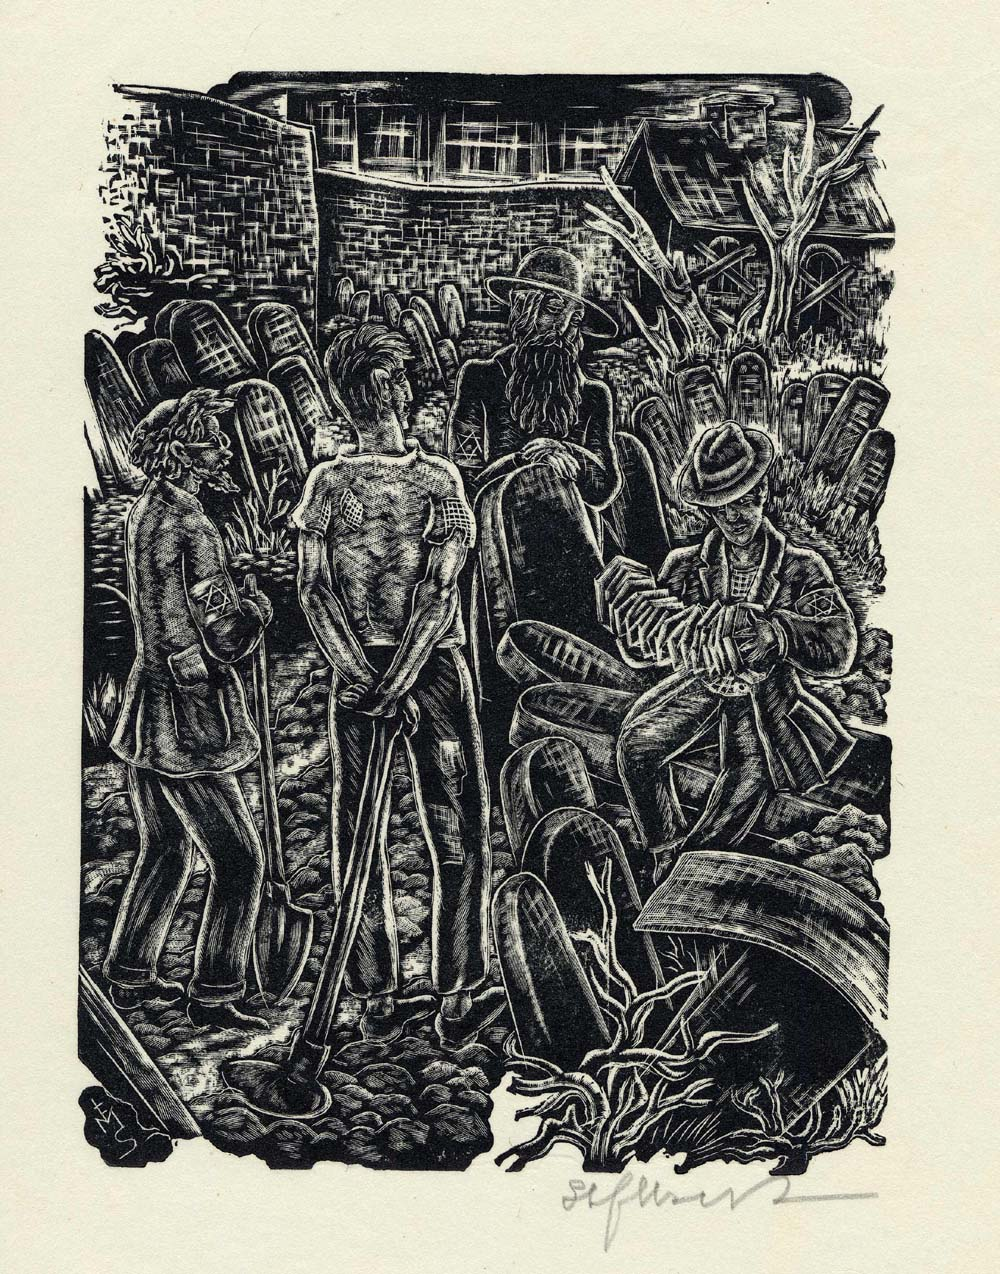 ''Growing Vegetables in the Cemetery'', woodcut print by Stefan Mrozewski